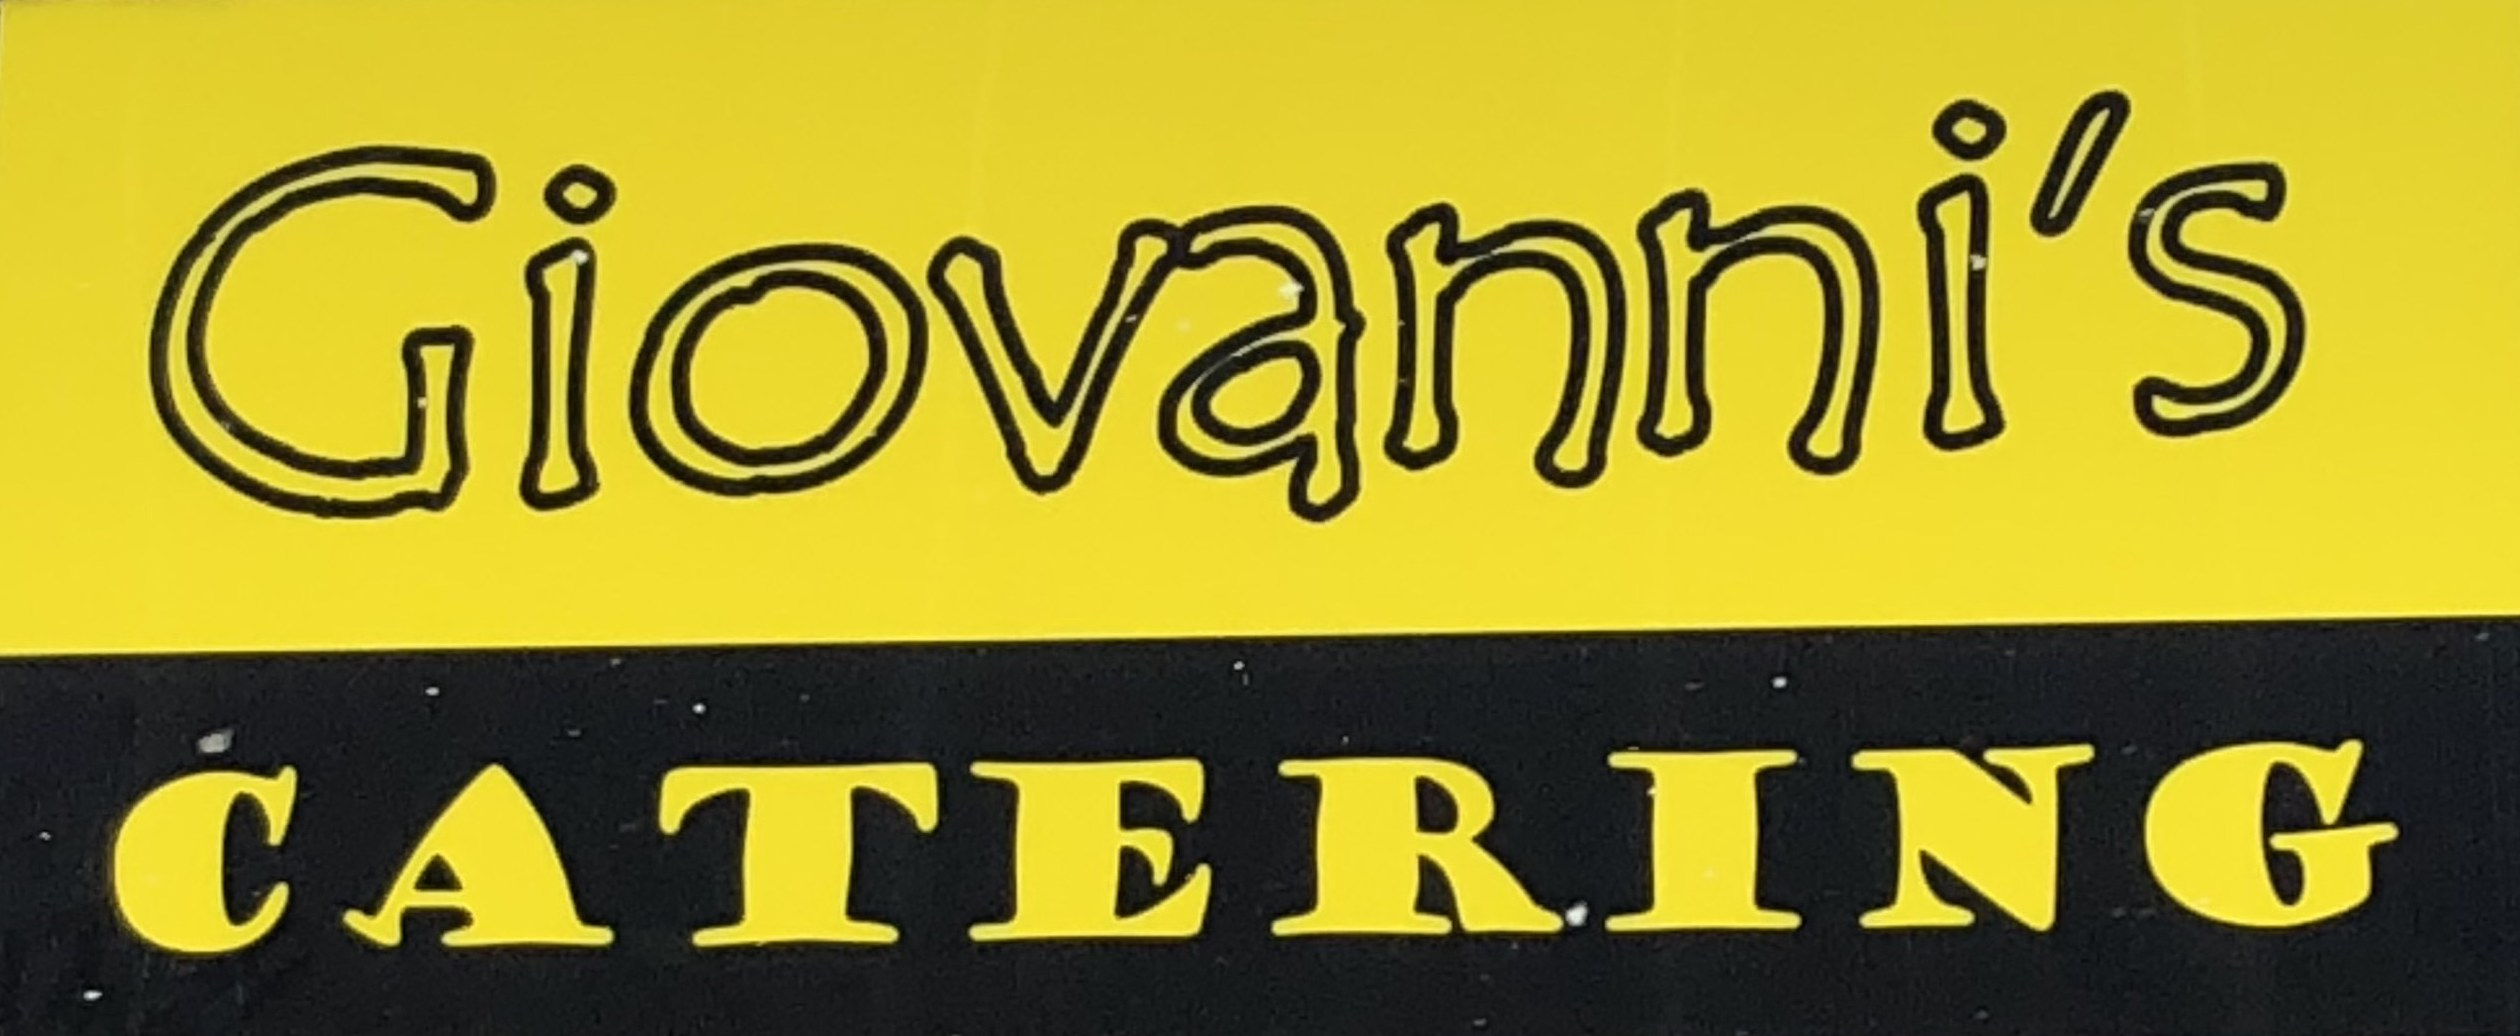 Giovanni's Catering Logo